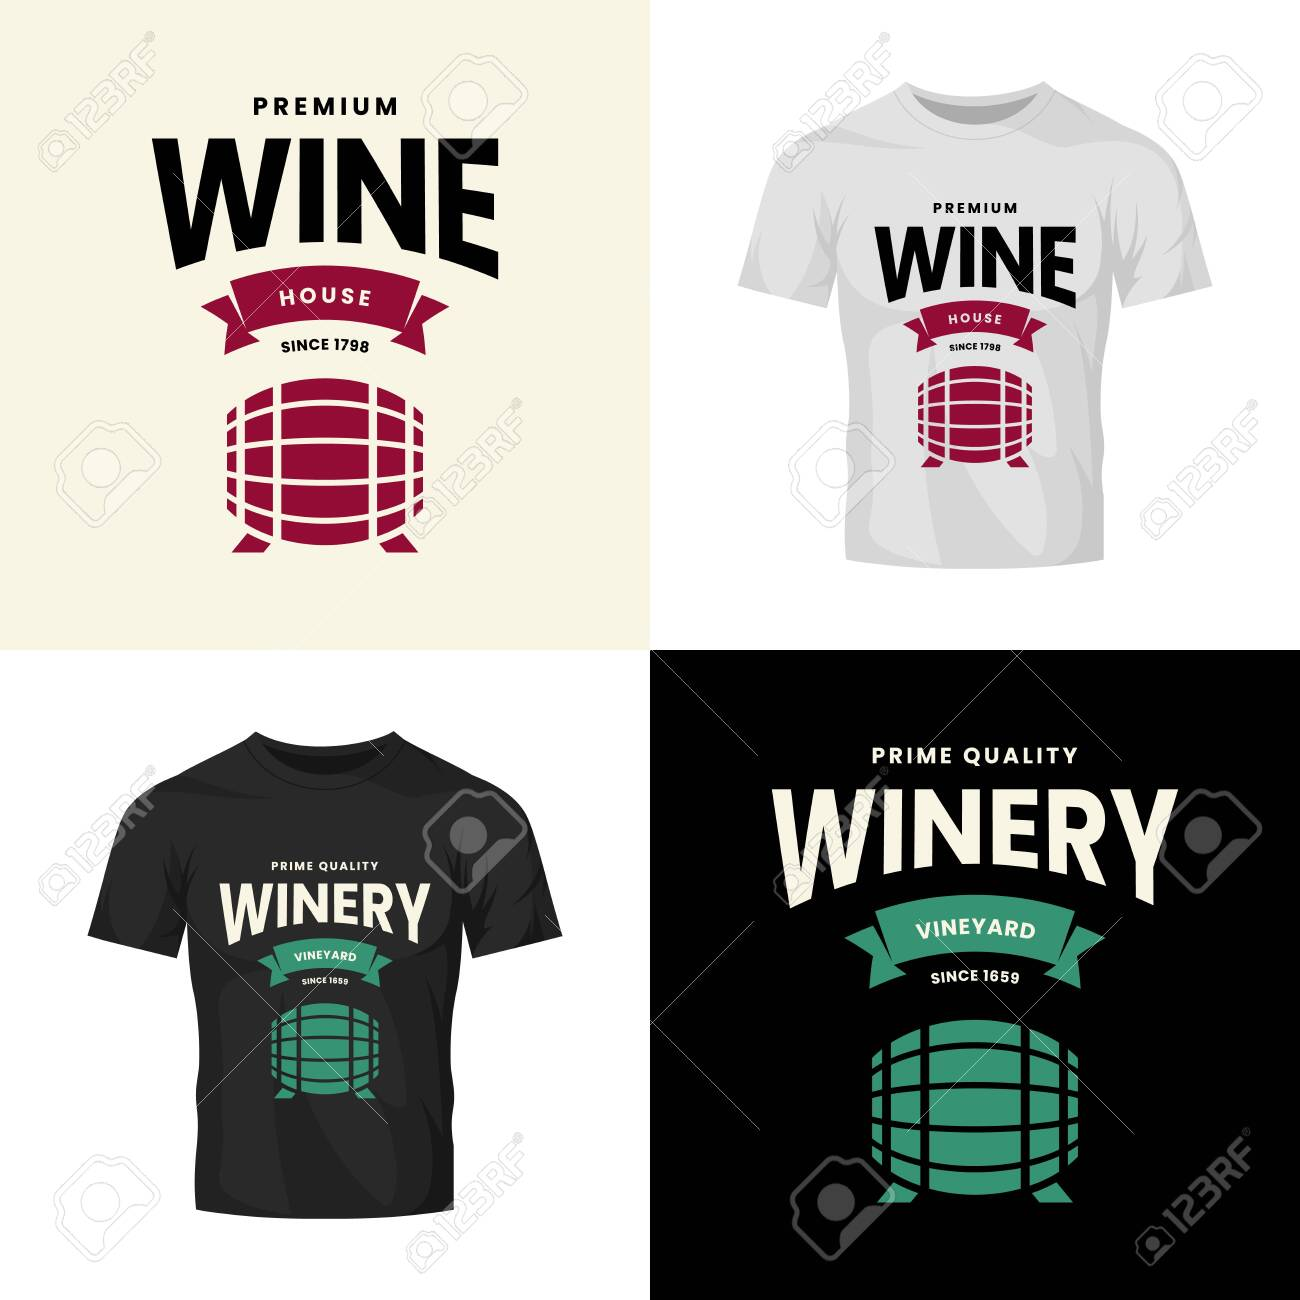 Modern wine vector isolated logo collection for tavern, restaurant, house, shop, store, club and cellar. Premium quality vinery logotype illustration set. Fashion brand badge design template bundle. - 120438766